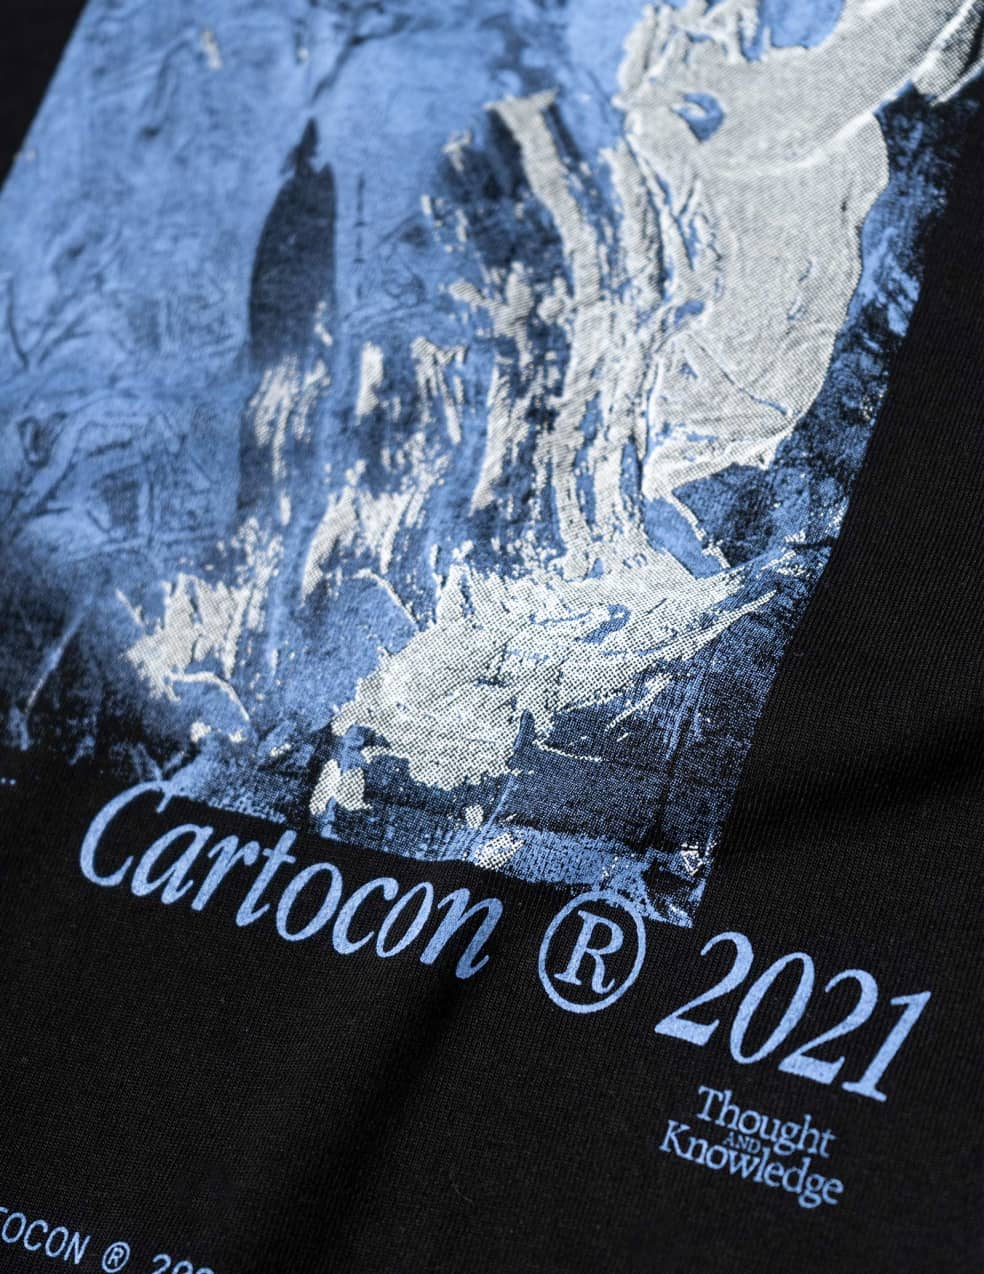 CARTOCON Thought & Knowledge T-Shirt - Black   T-Shirt by Cartocon 2